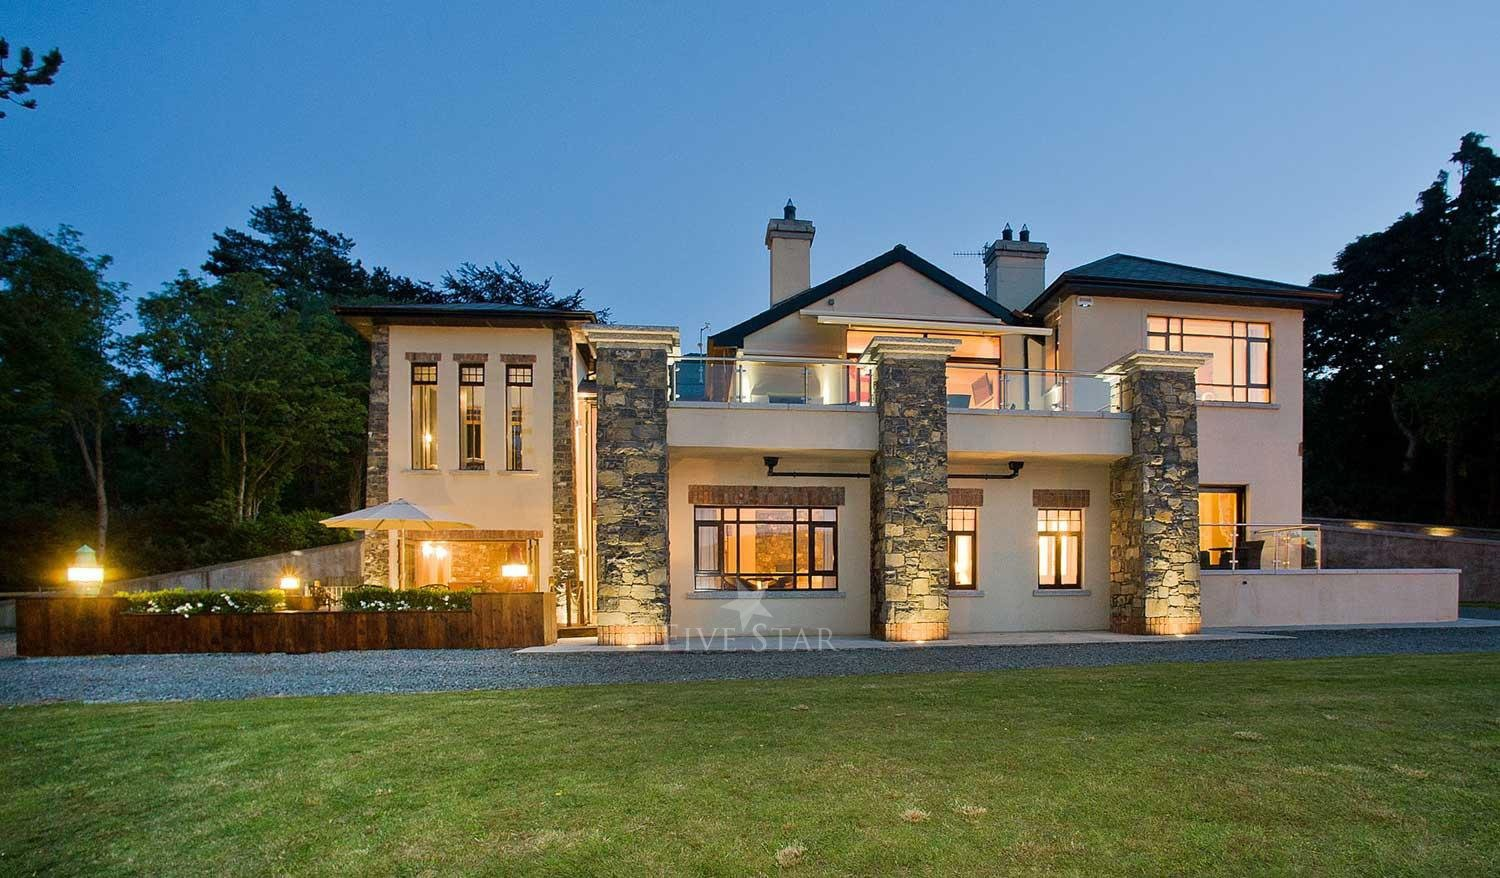 #9 Starboard House: Carlingford Bay, Louth (5 Bedrooms)